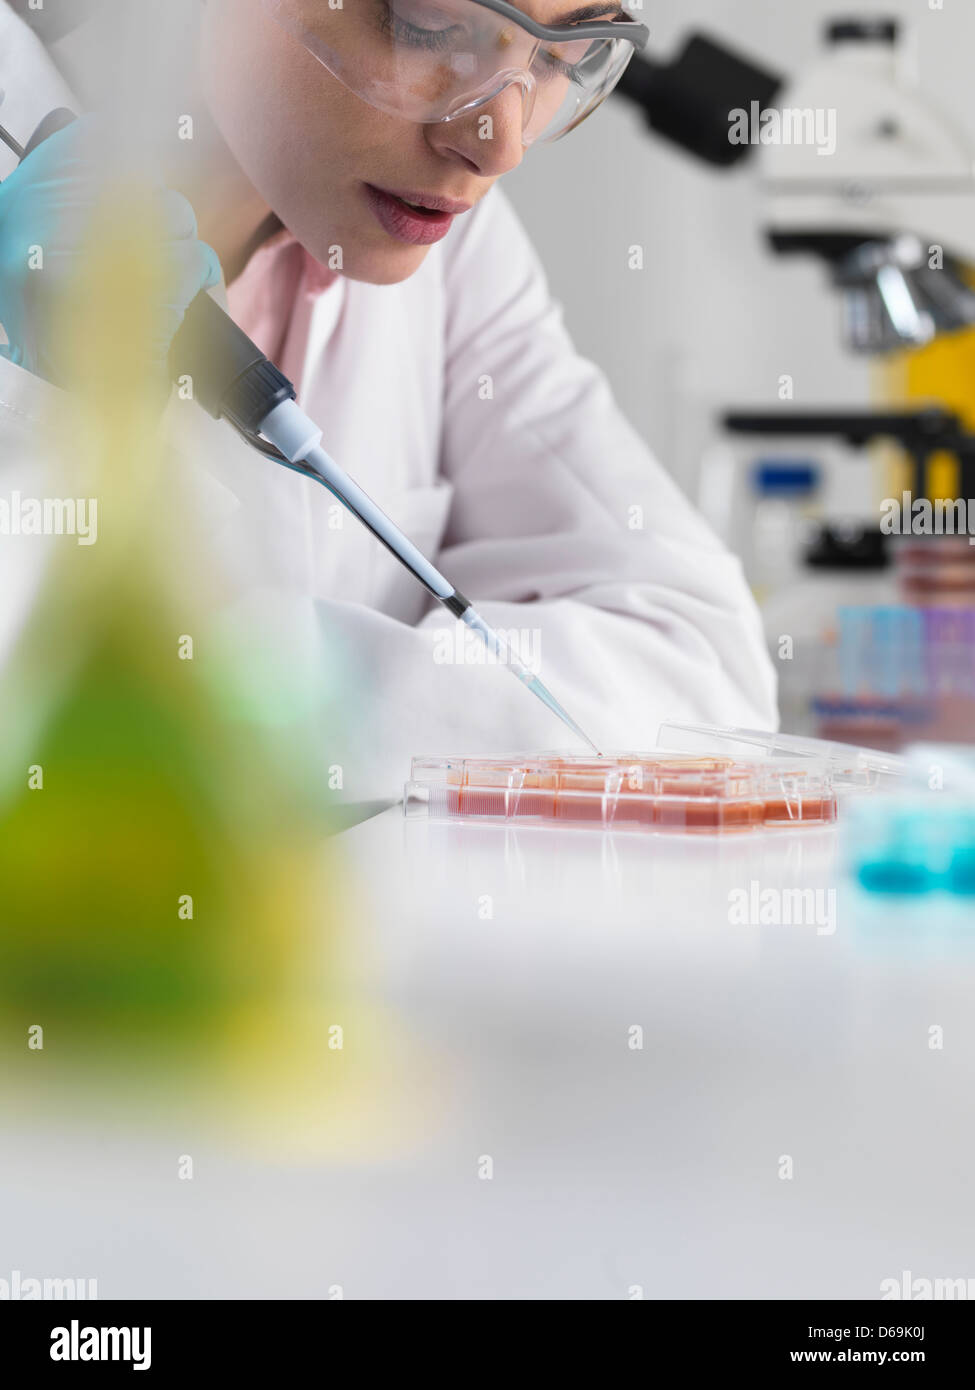 Scientist pipetting stem cells in tubes - Stock Image